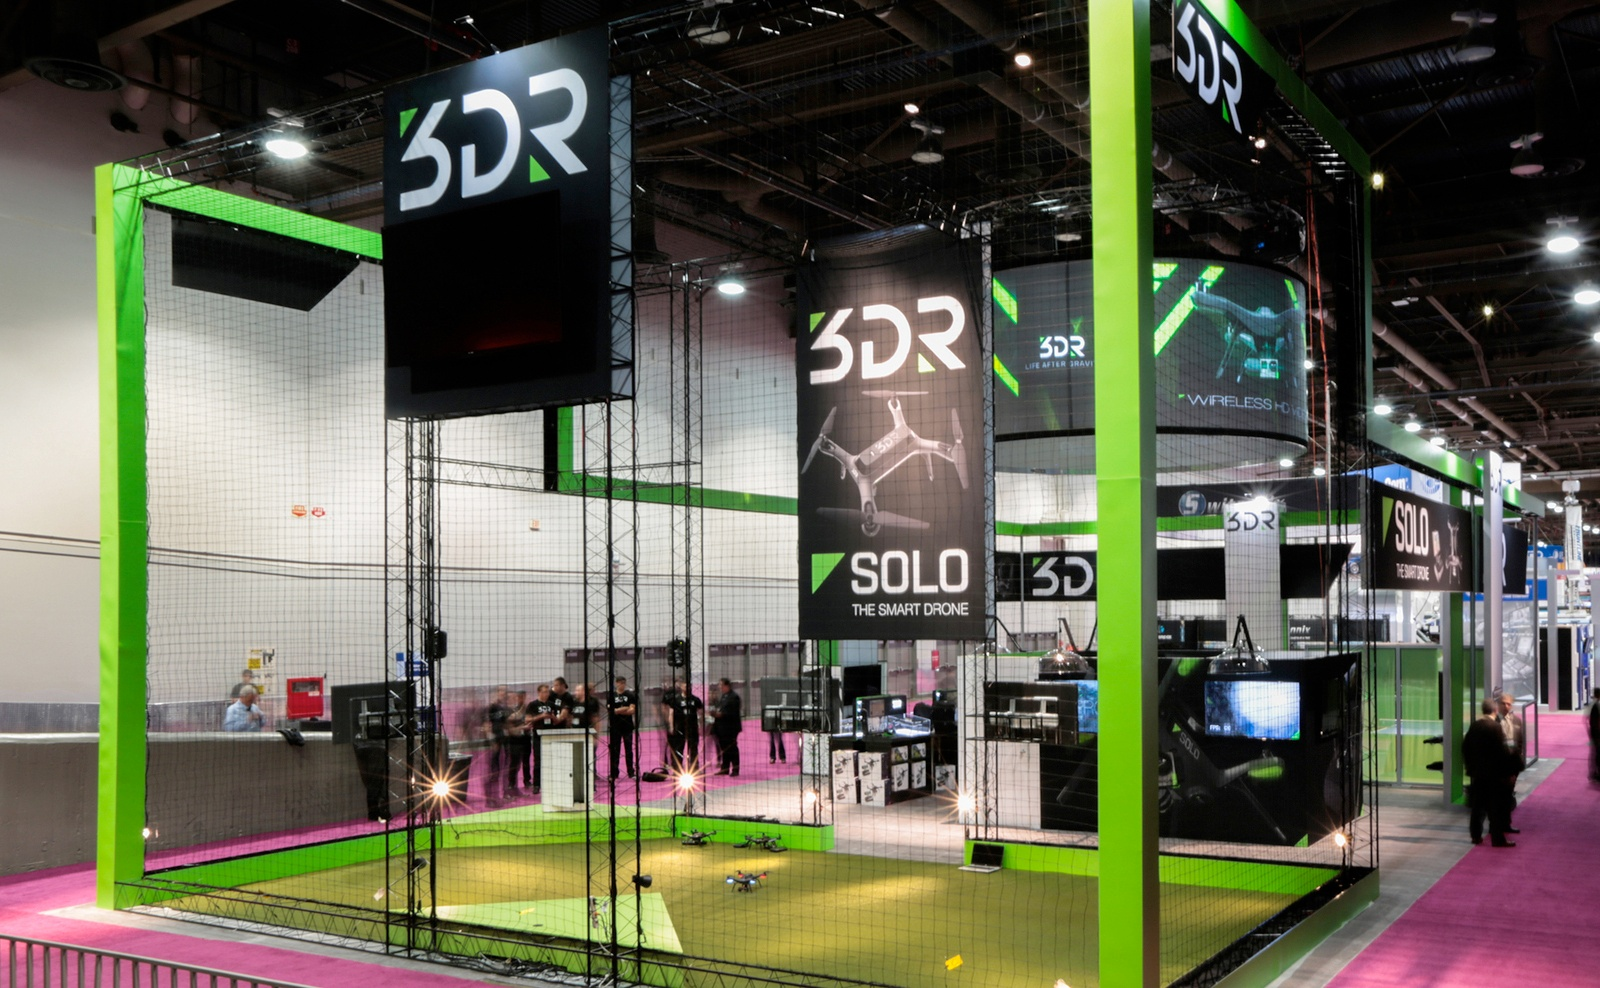 GRAPHIC DESIGN AND BOOTH DESIGN